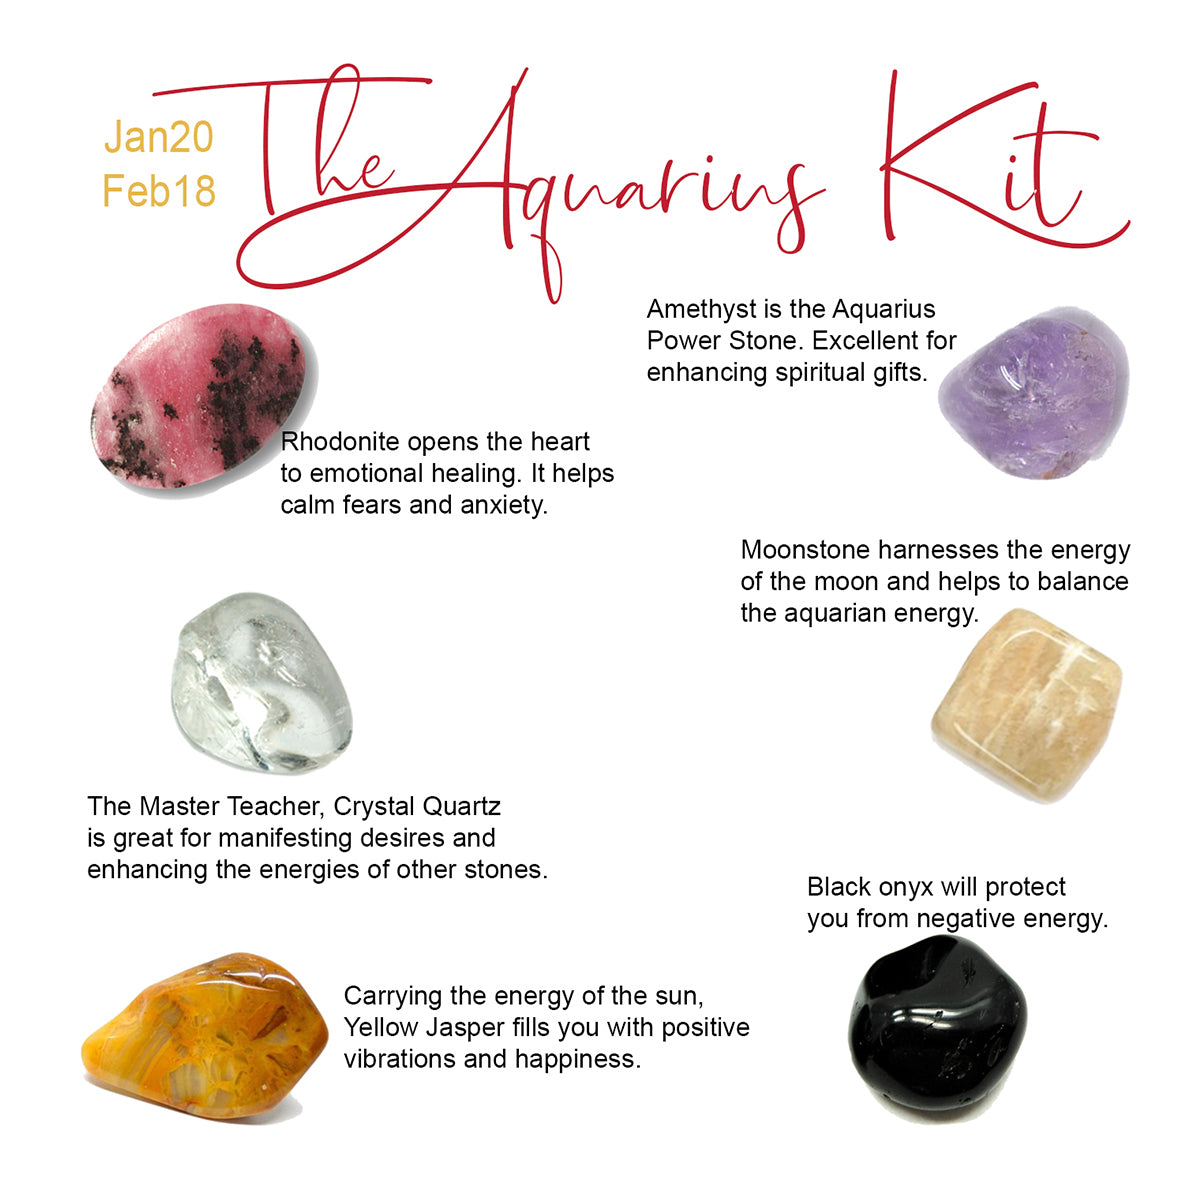 Aquarius Zodiac Kit | Rhodonite, Crystal Quartz, Yellow Jasper, Black Onyx, Amethyst, Moonstone healing crystals